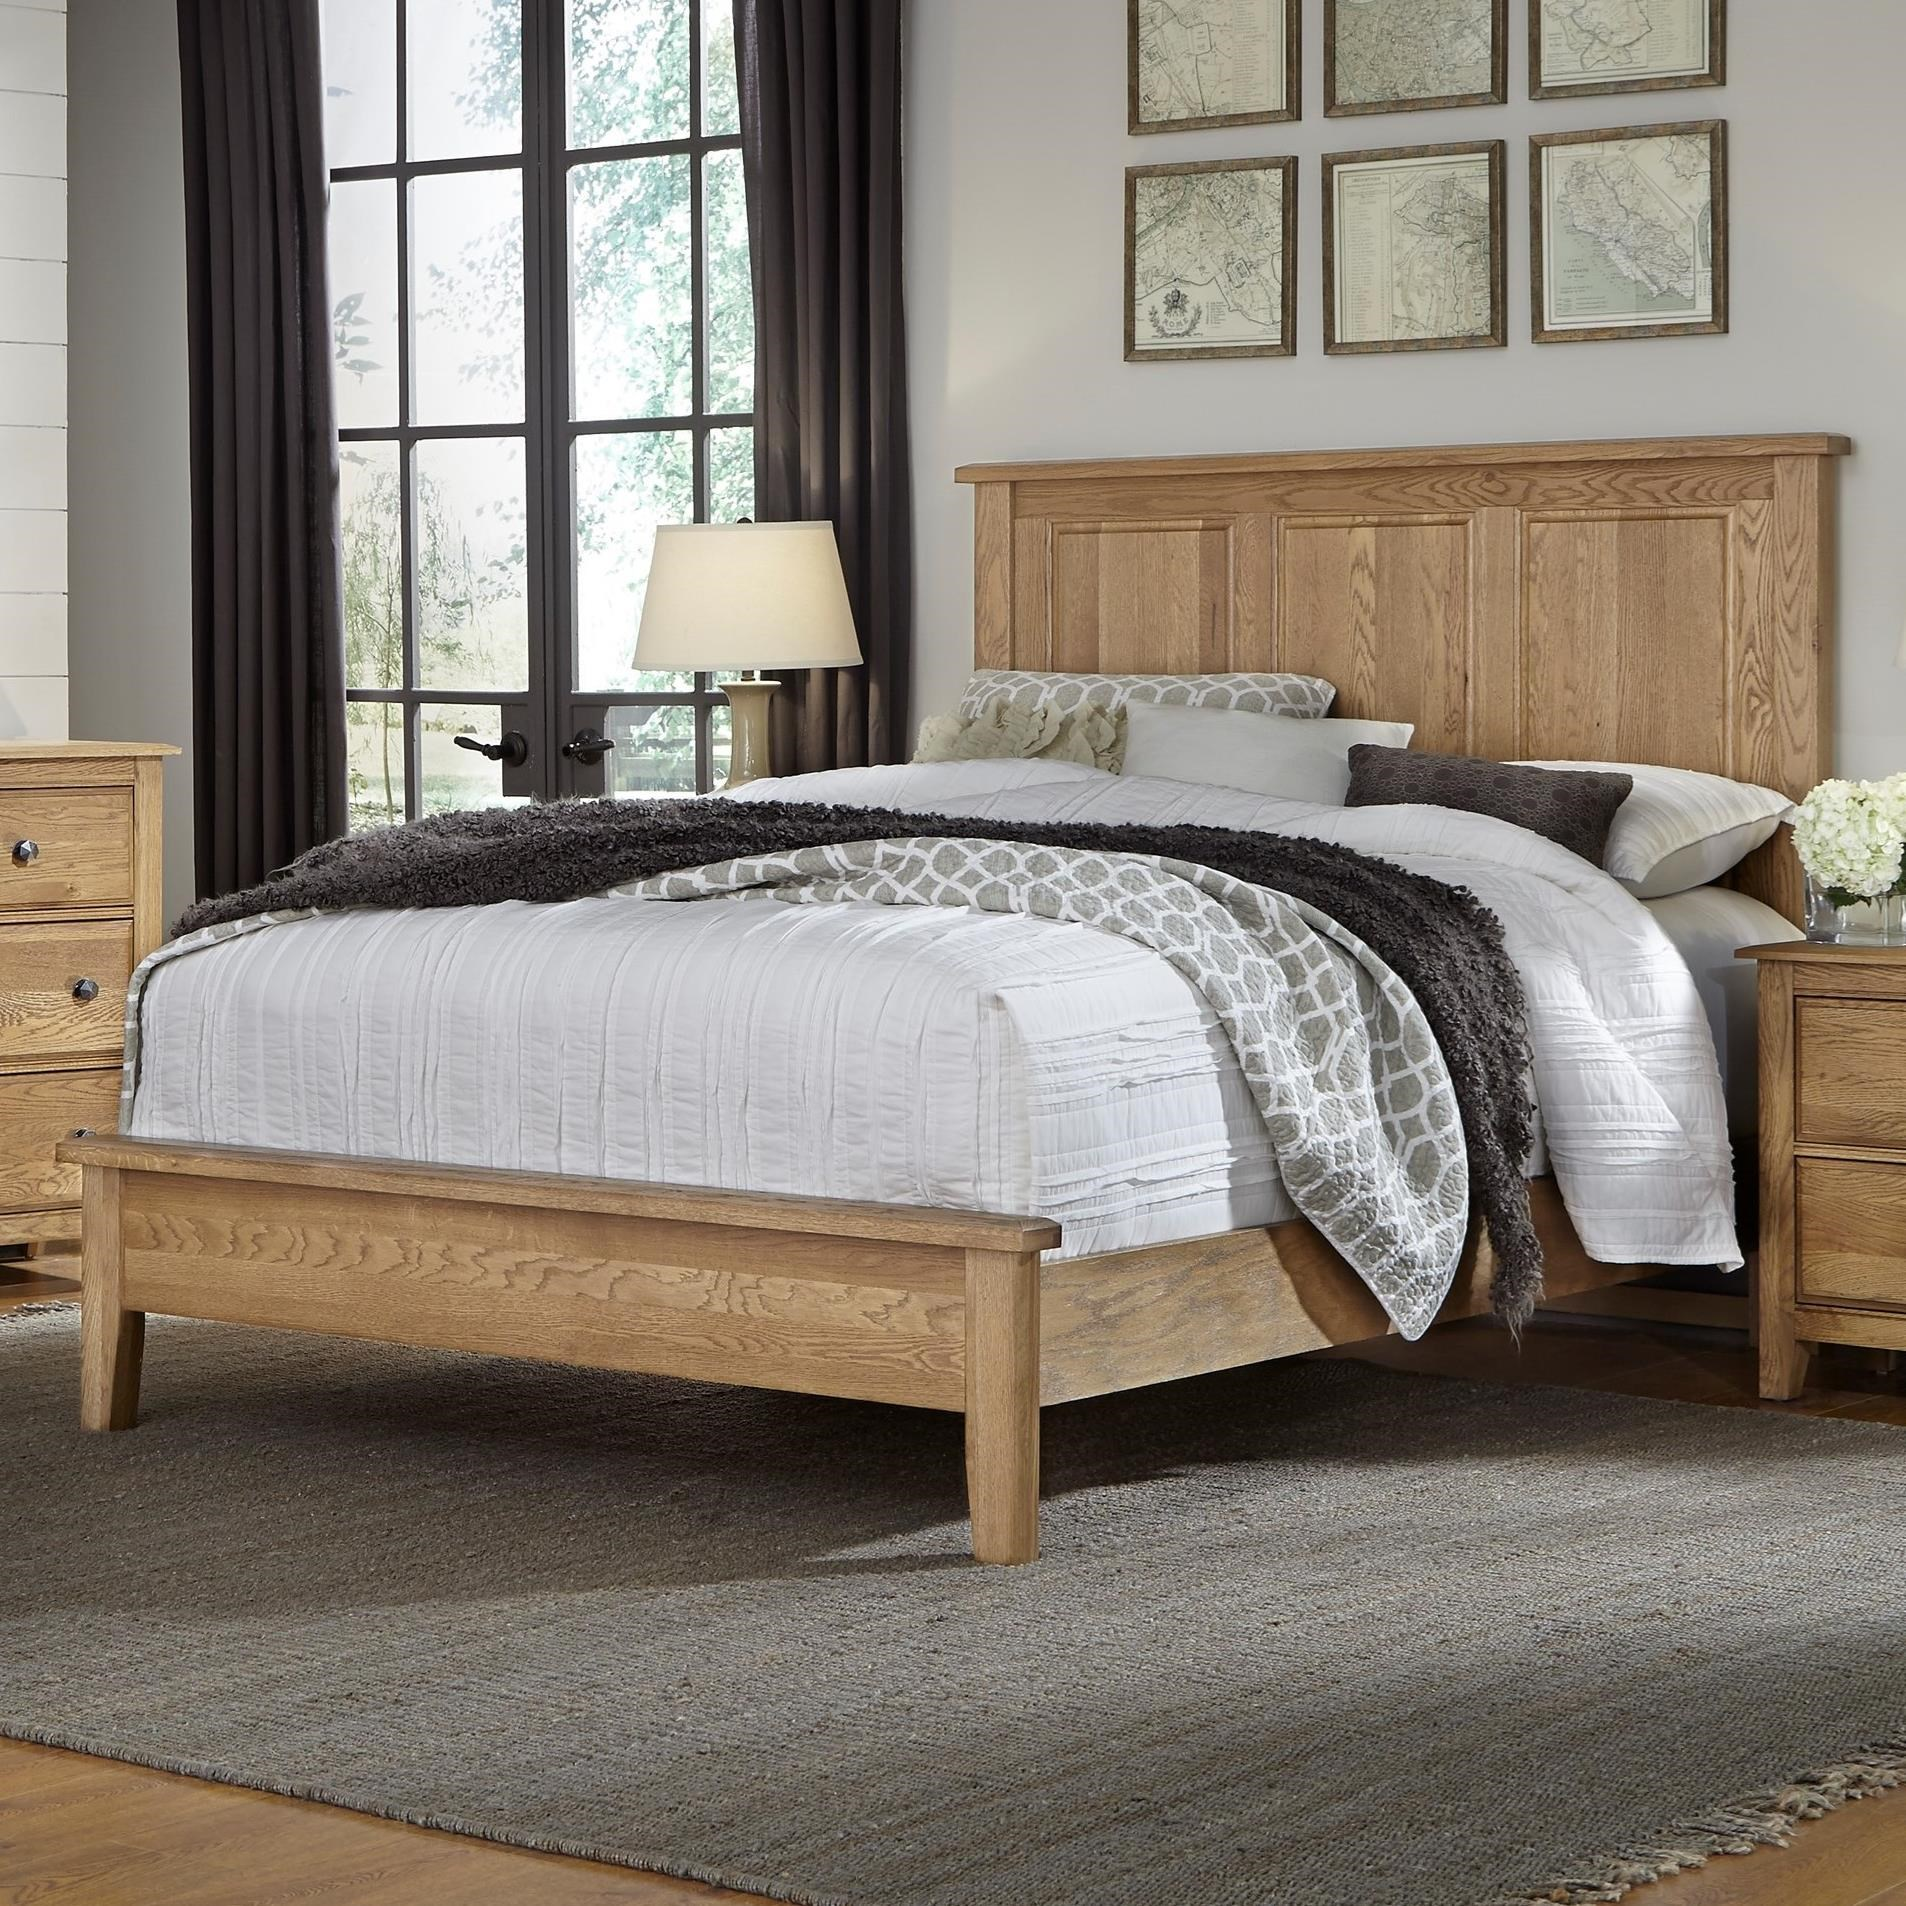 artisan post artisan choices king panel bed with low profile footboard hudson 39 s furniture. Black Bedroom Furniture Sets. Home Design Ideas